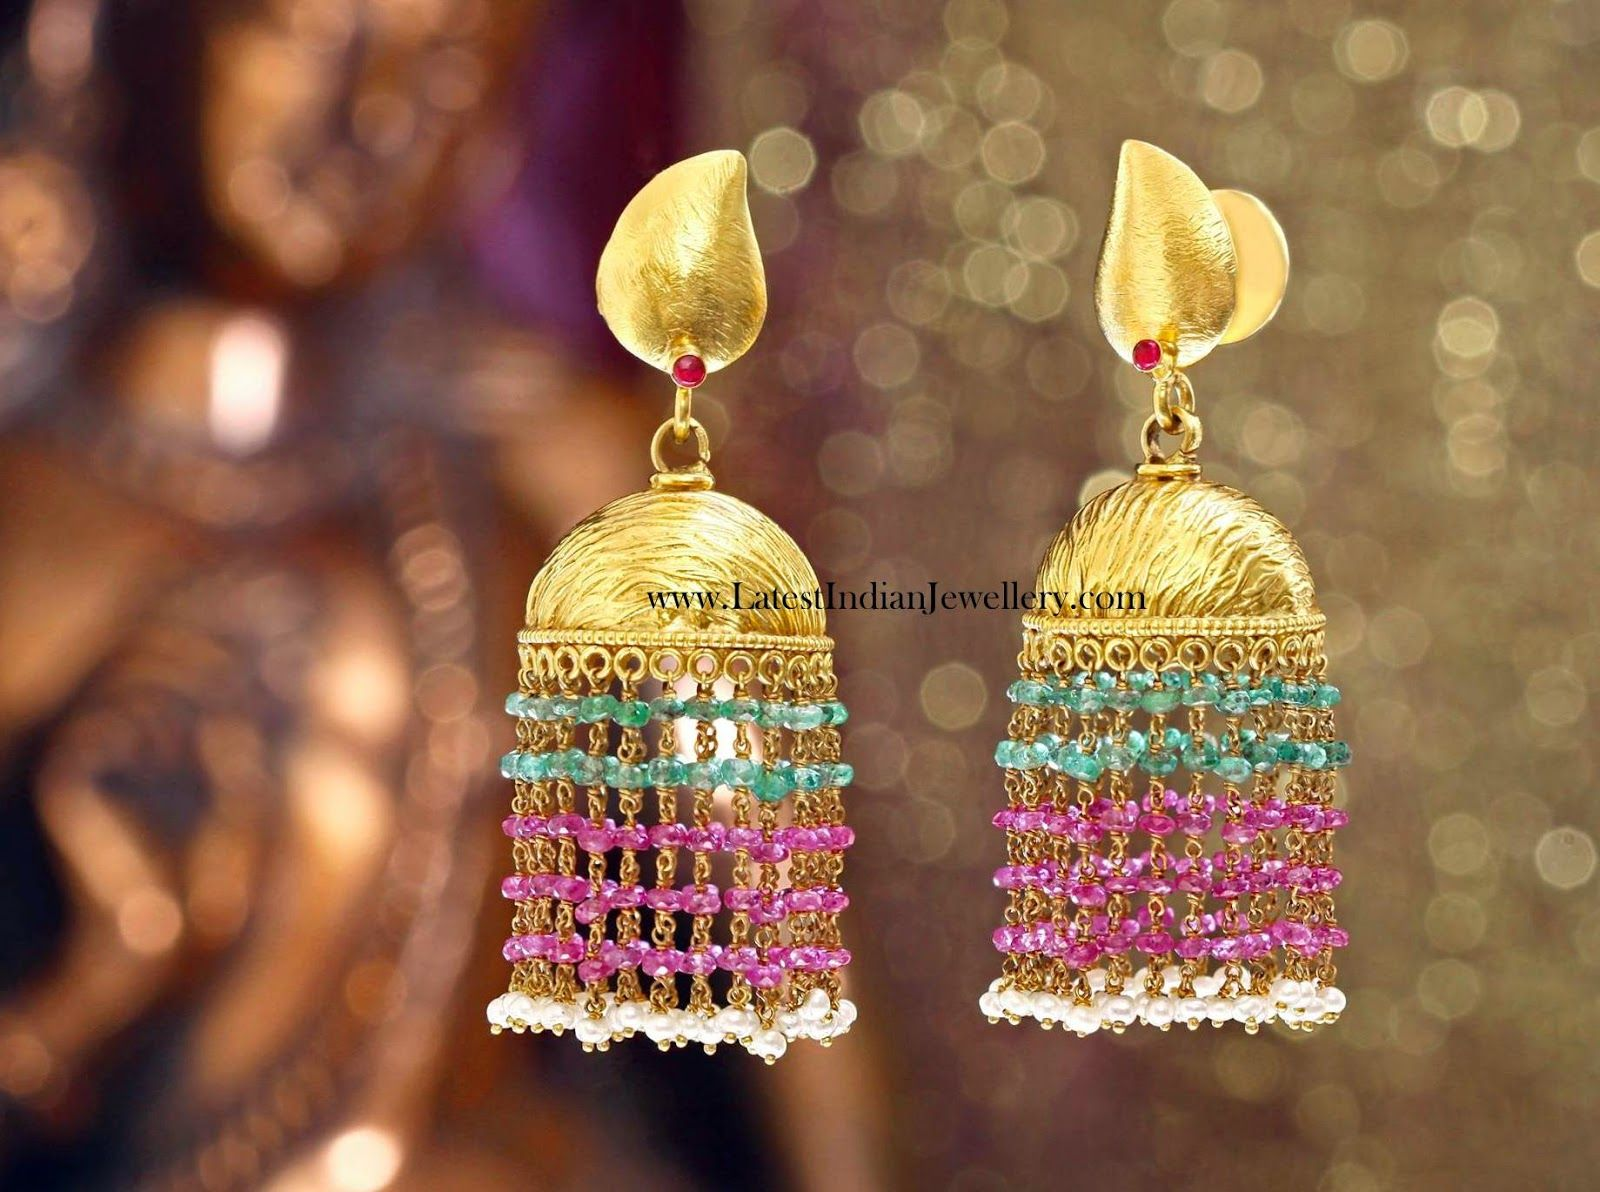 And contemporary gold jhumkas collection by khazana jewellery - 22 Kt Gold Stylish Indian Gold Earrings In Jhumka Style With A Brushed Finish Light Weight Gold Jhumka Earrings With Ruby Emerald Long Chains Hanging From